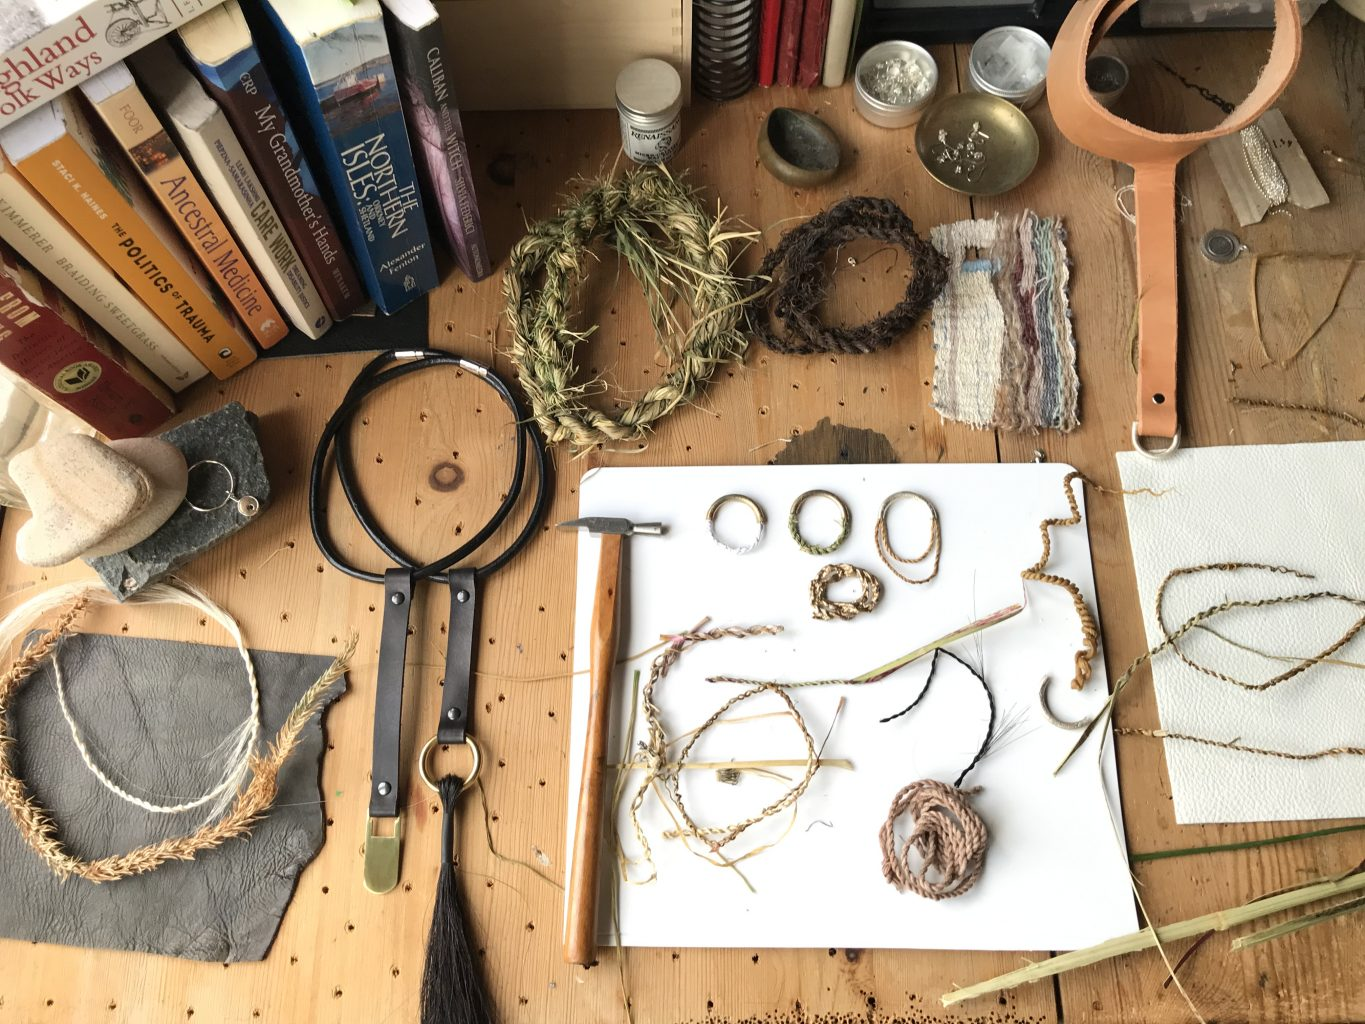 Bird's eye view of a workbench with handmade rope samples on a white sheet of paper, with cut leather and weaving samples, tools, found objects and books